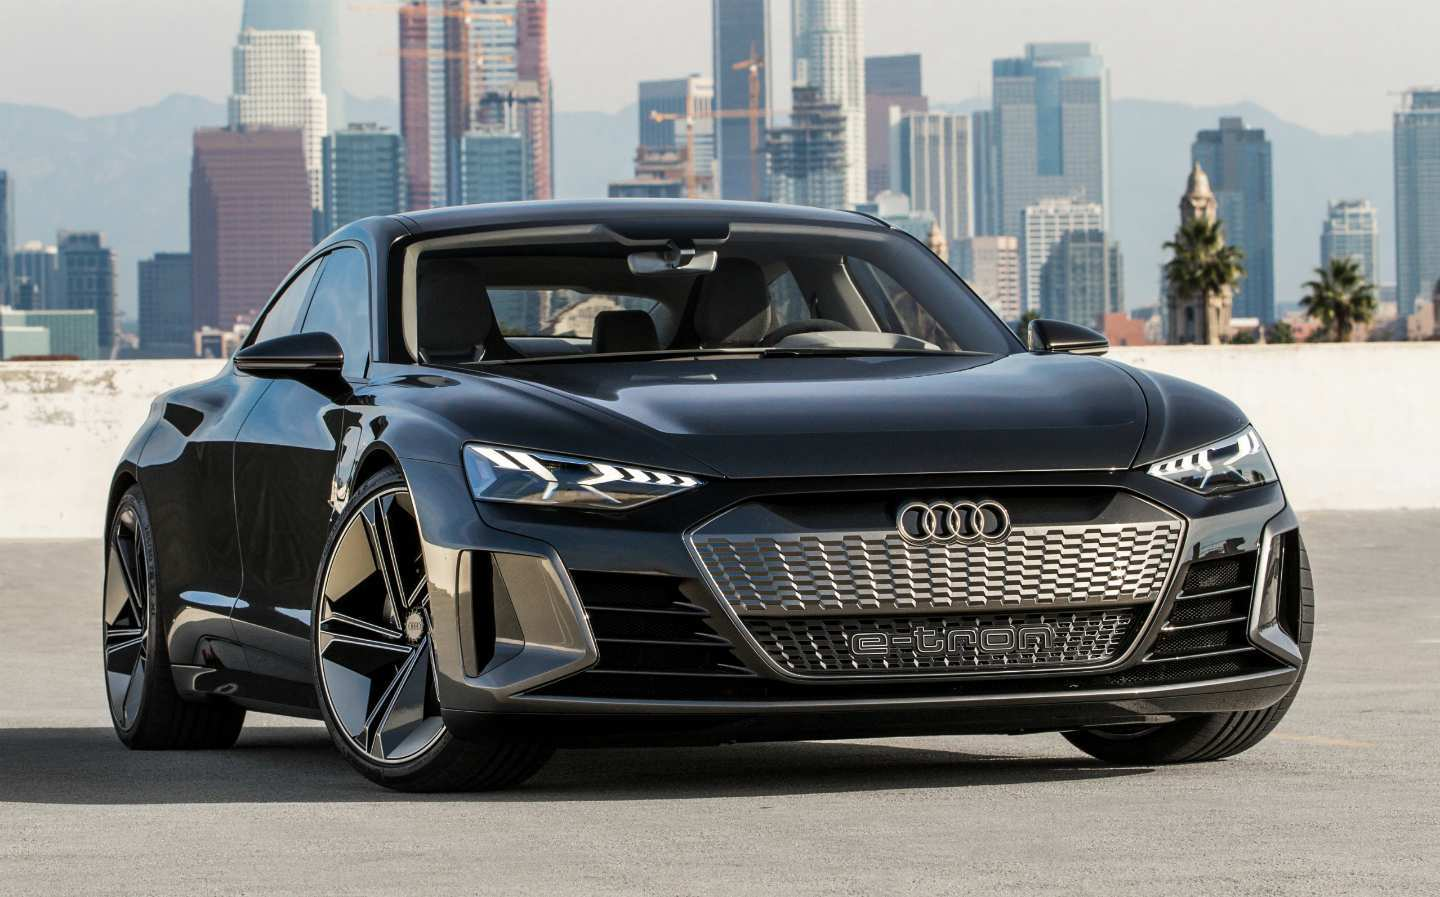 17 New Audi E Tron Gt Price 2020 Performance